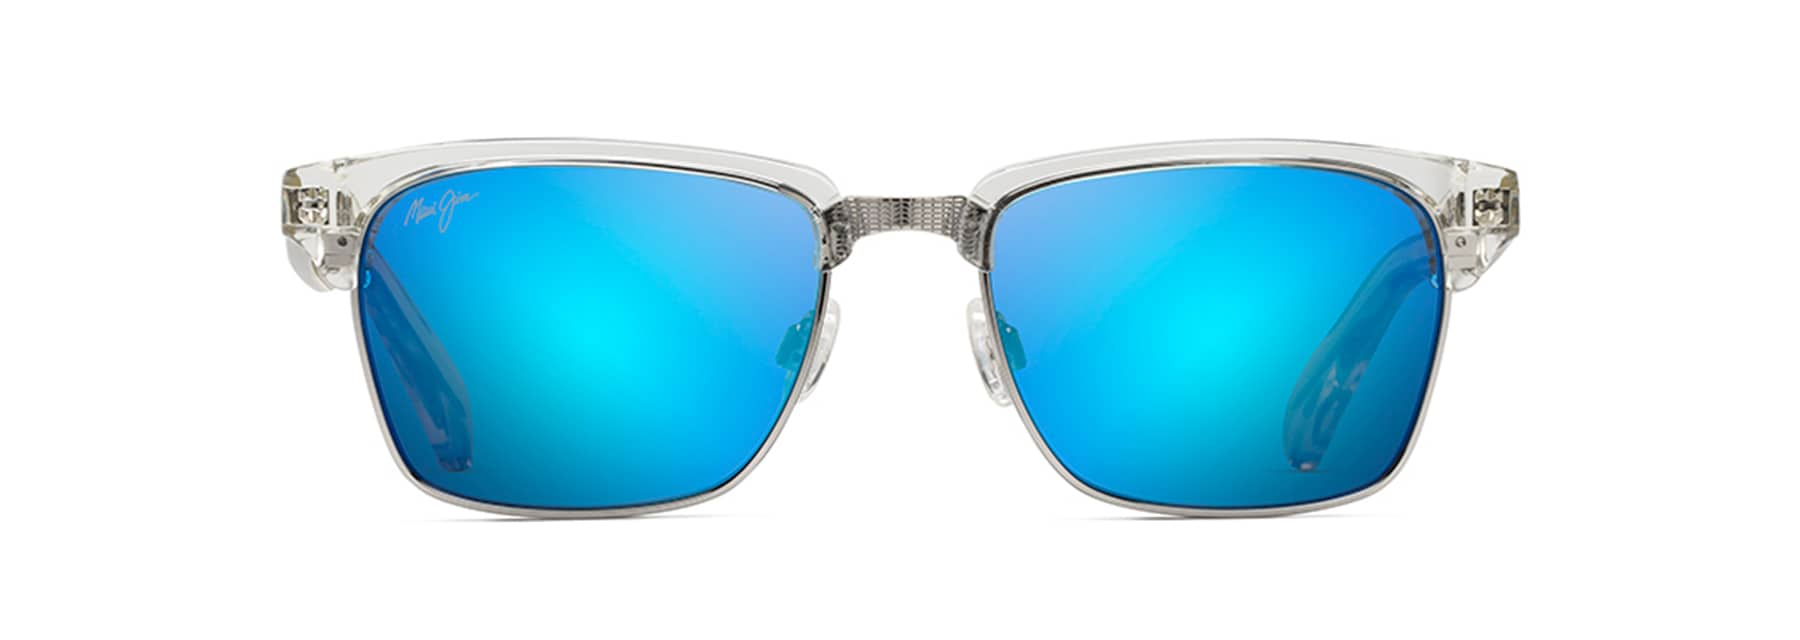 kawika polarized sunglasses maui jim®